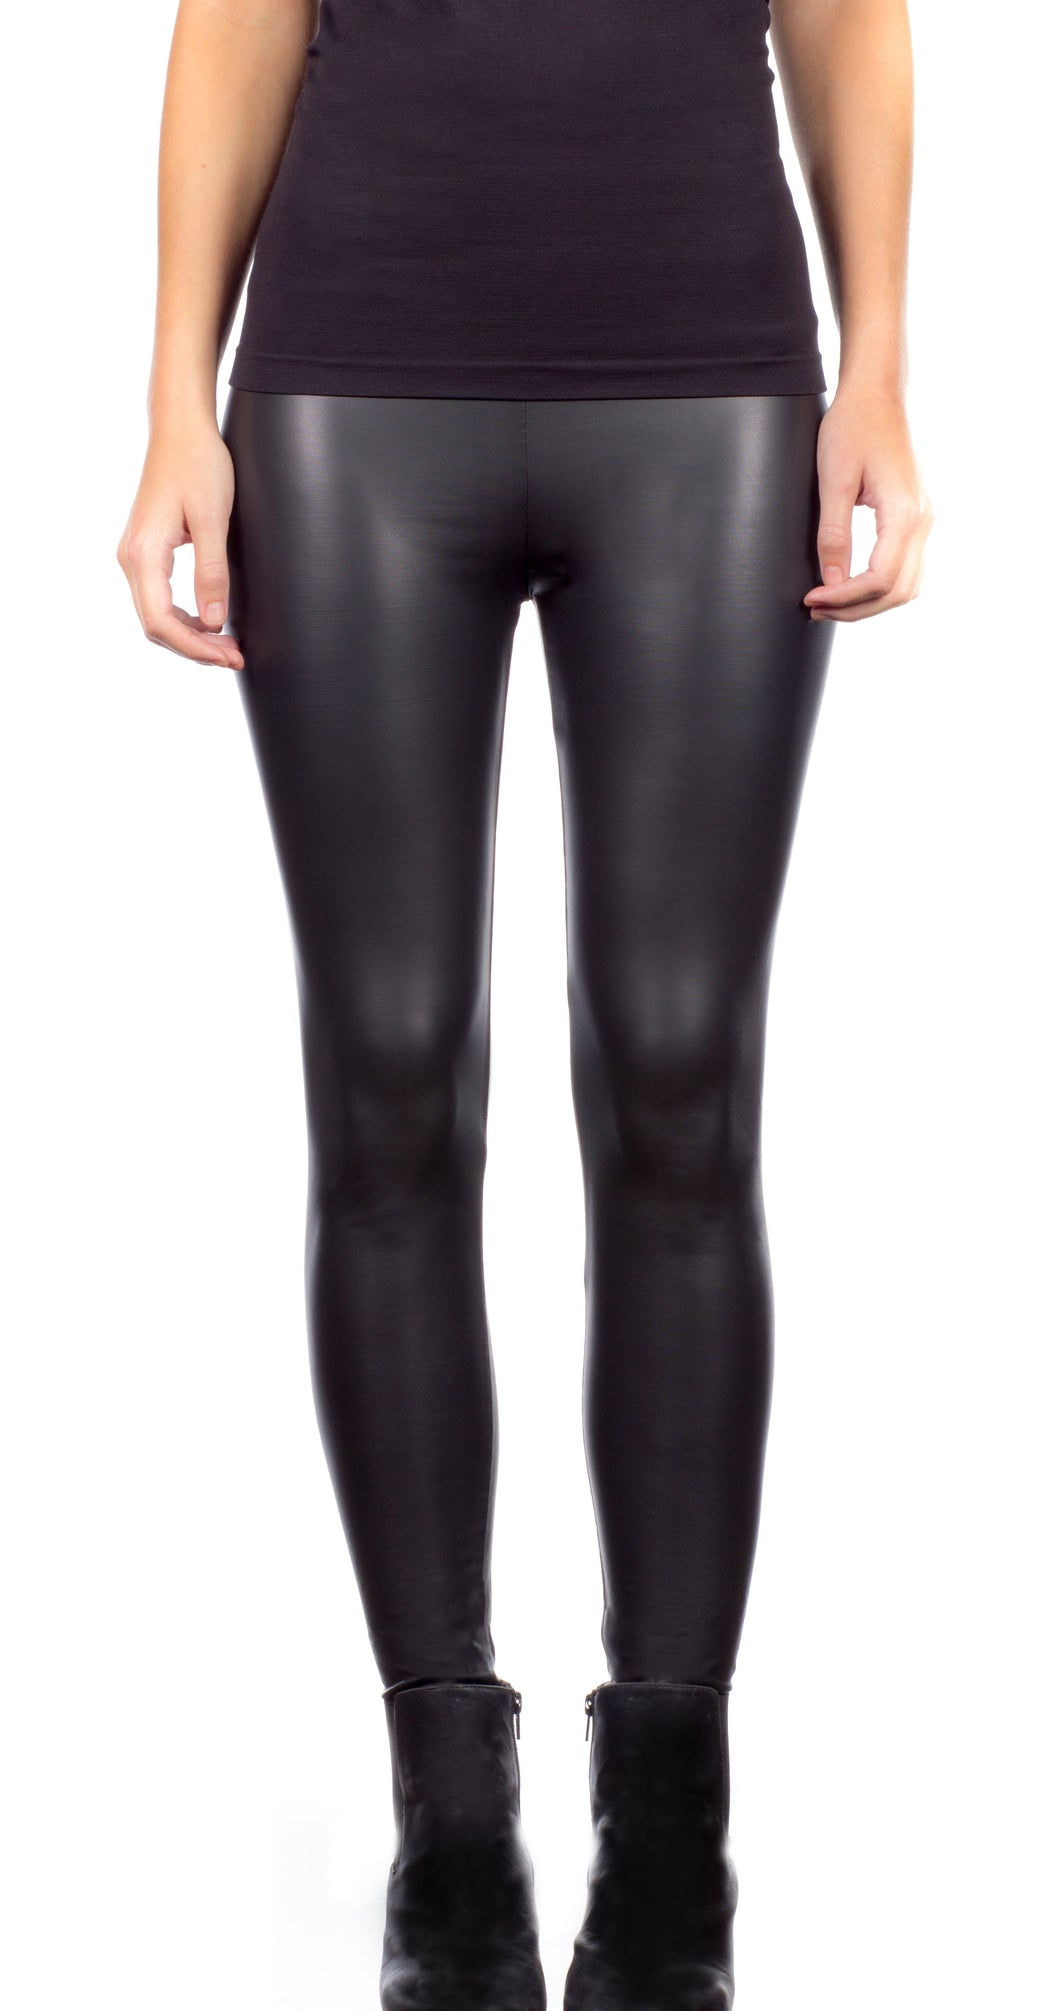 Liquid Leggings Sizes S, M, L